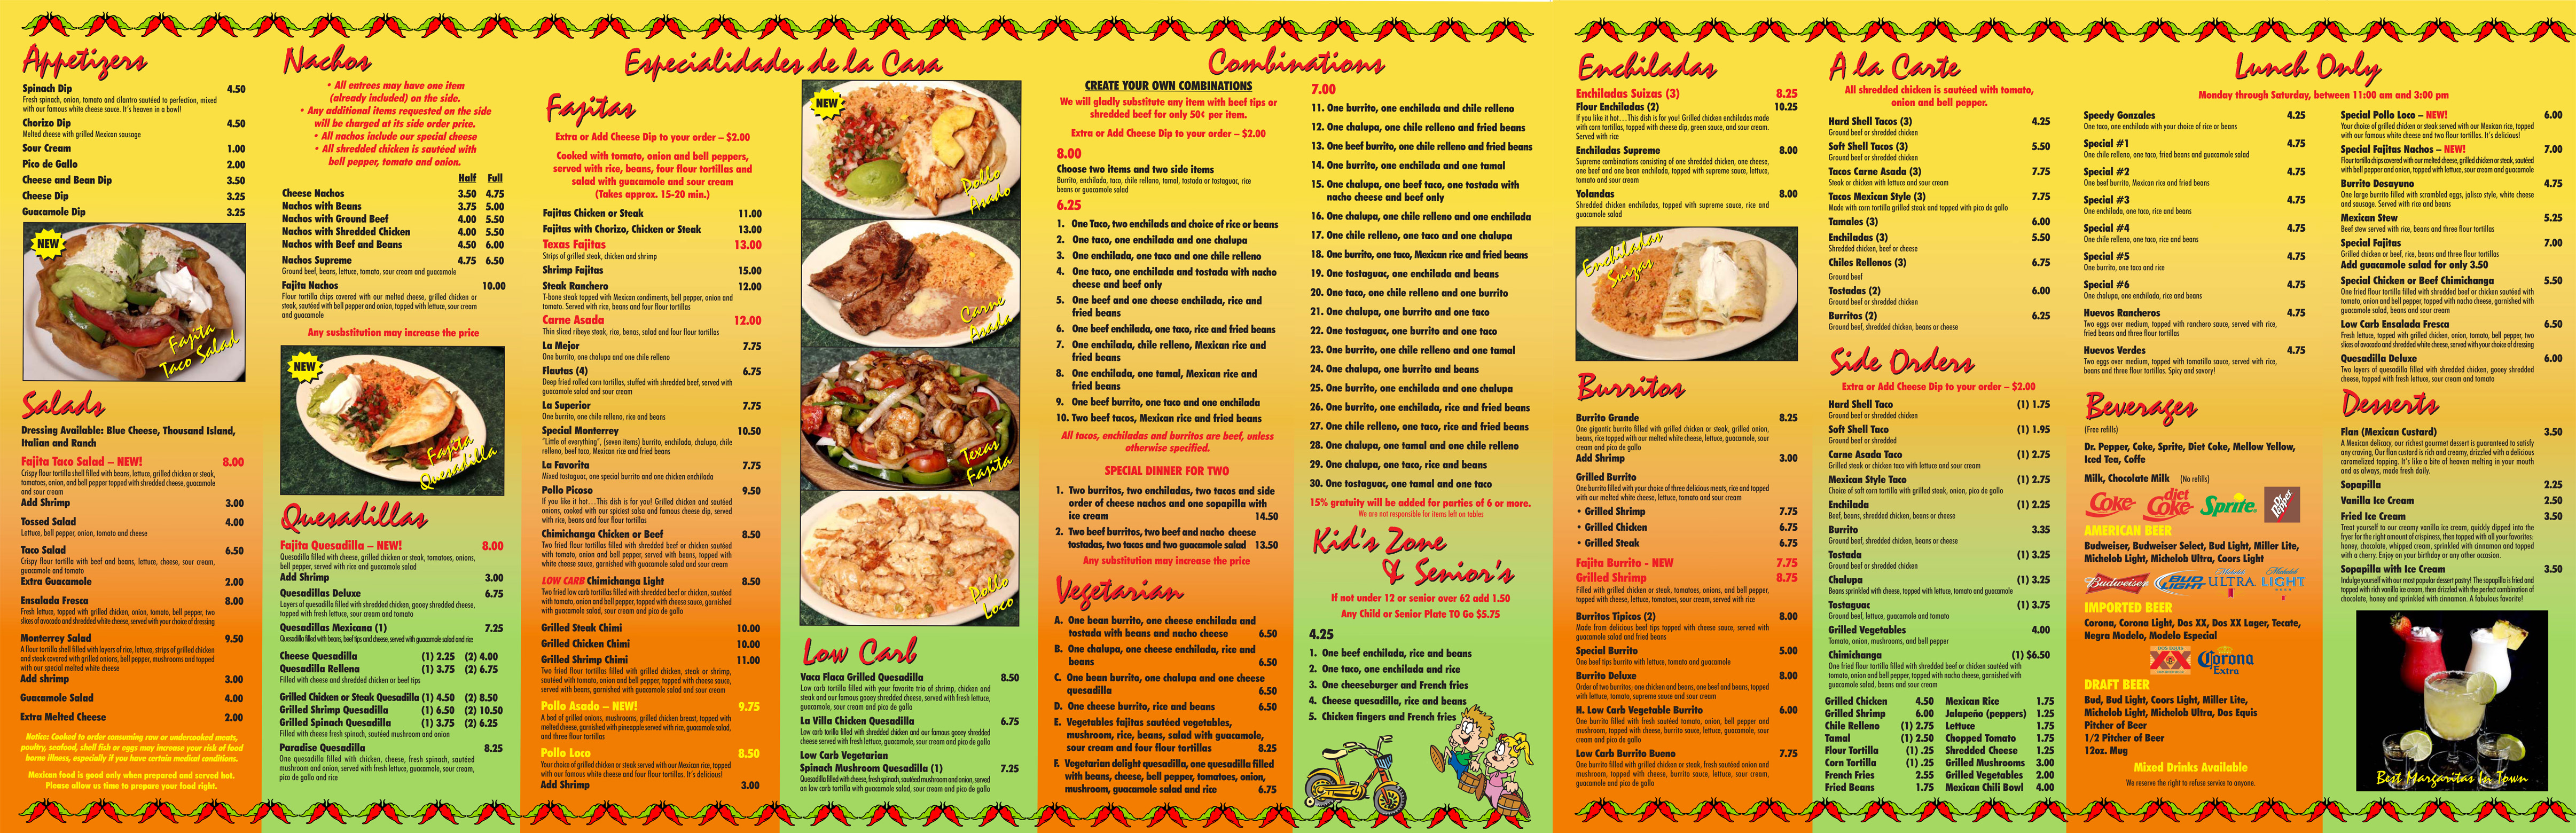 Tuesday Fast Food Specials Memphis